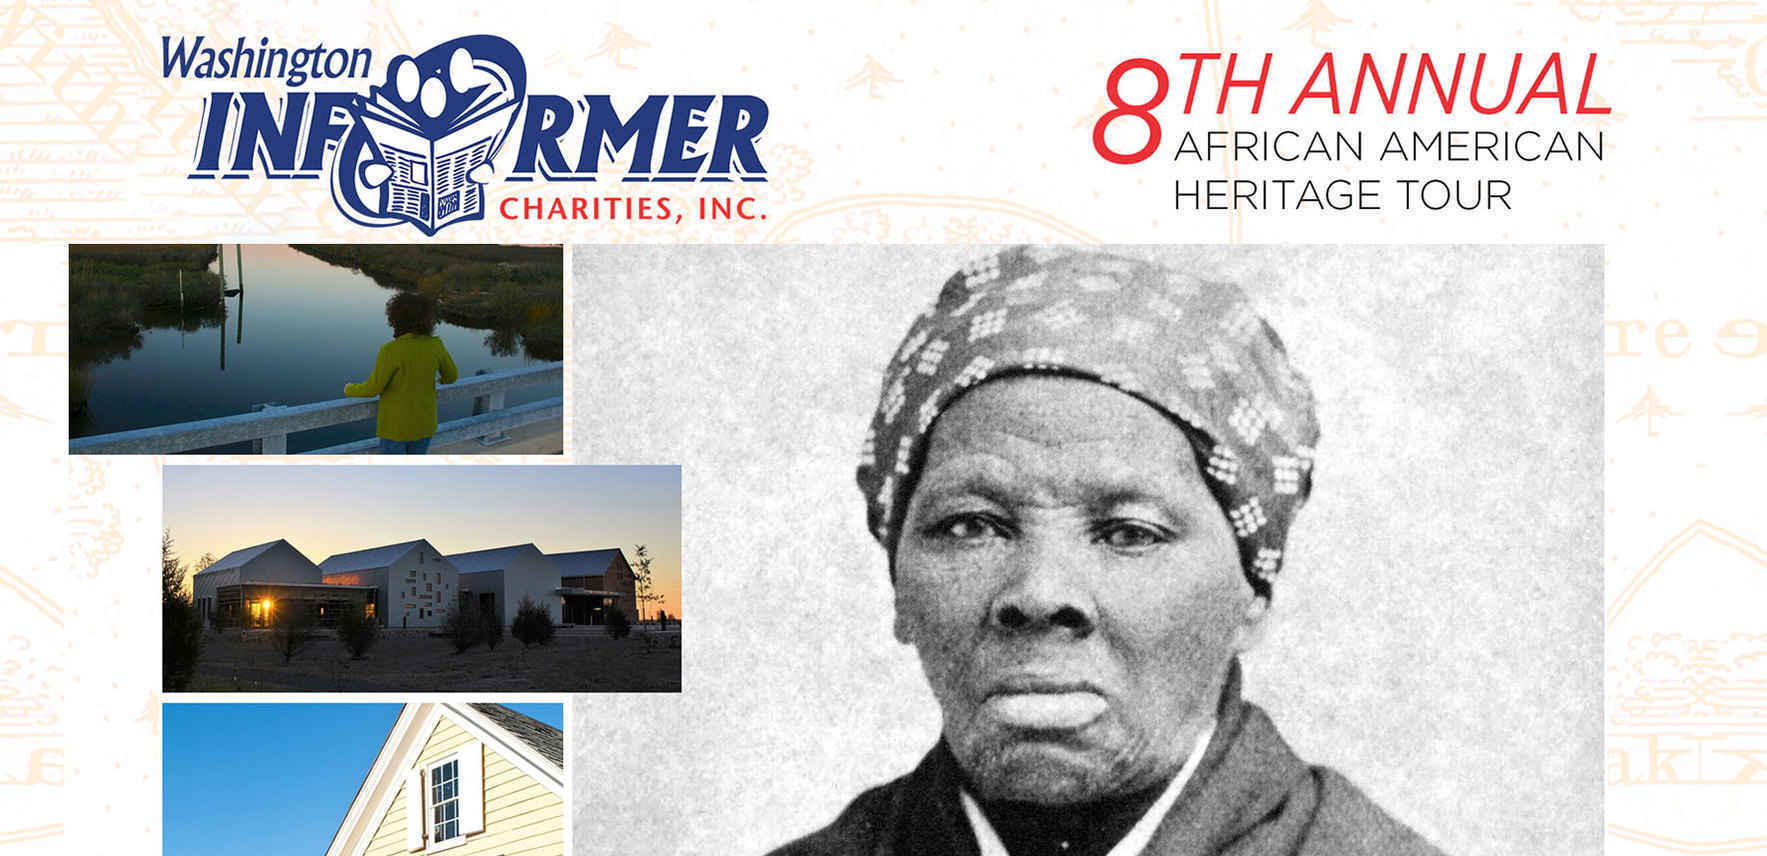 8th Annual African American Heritage Tour image